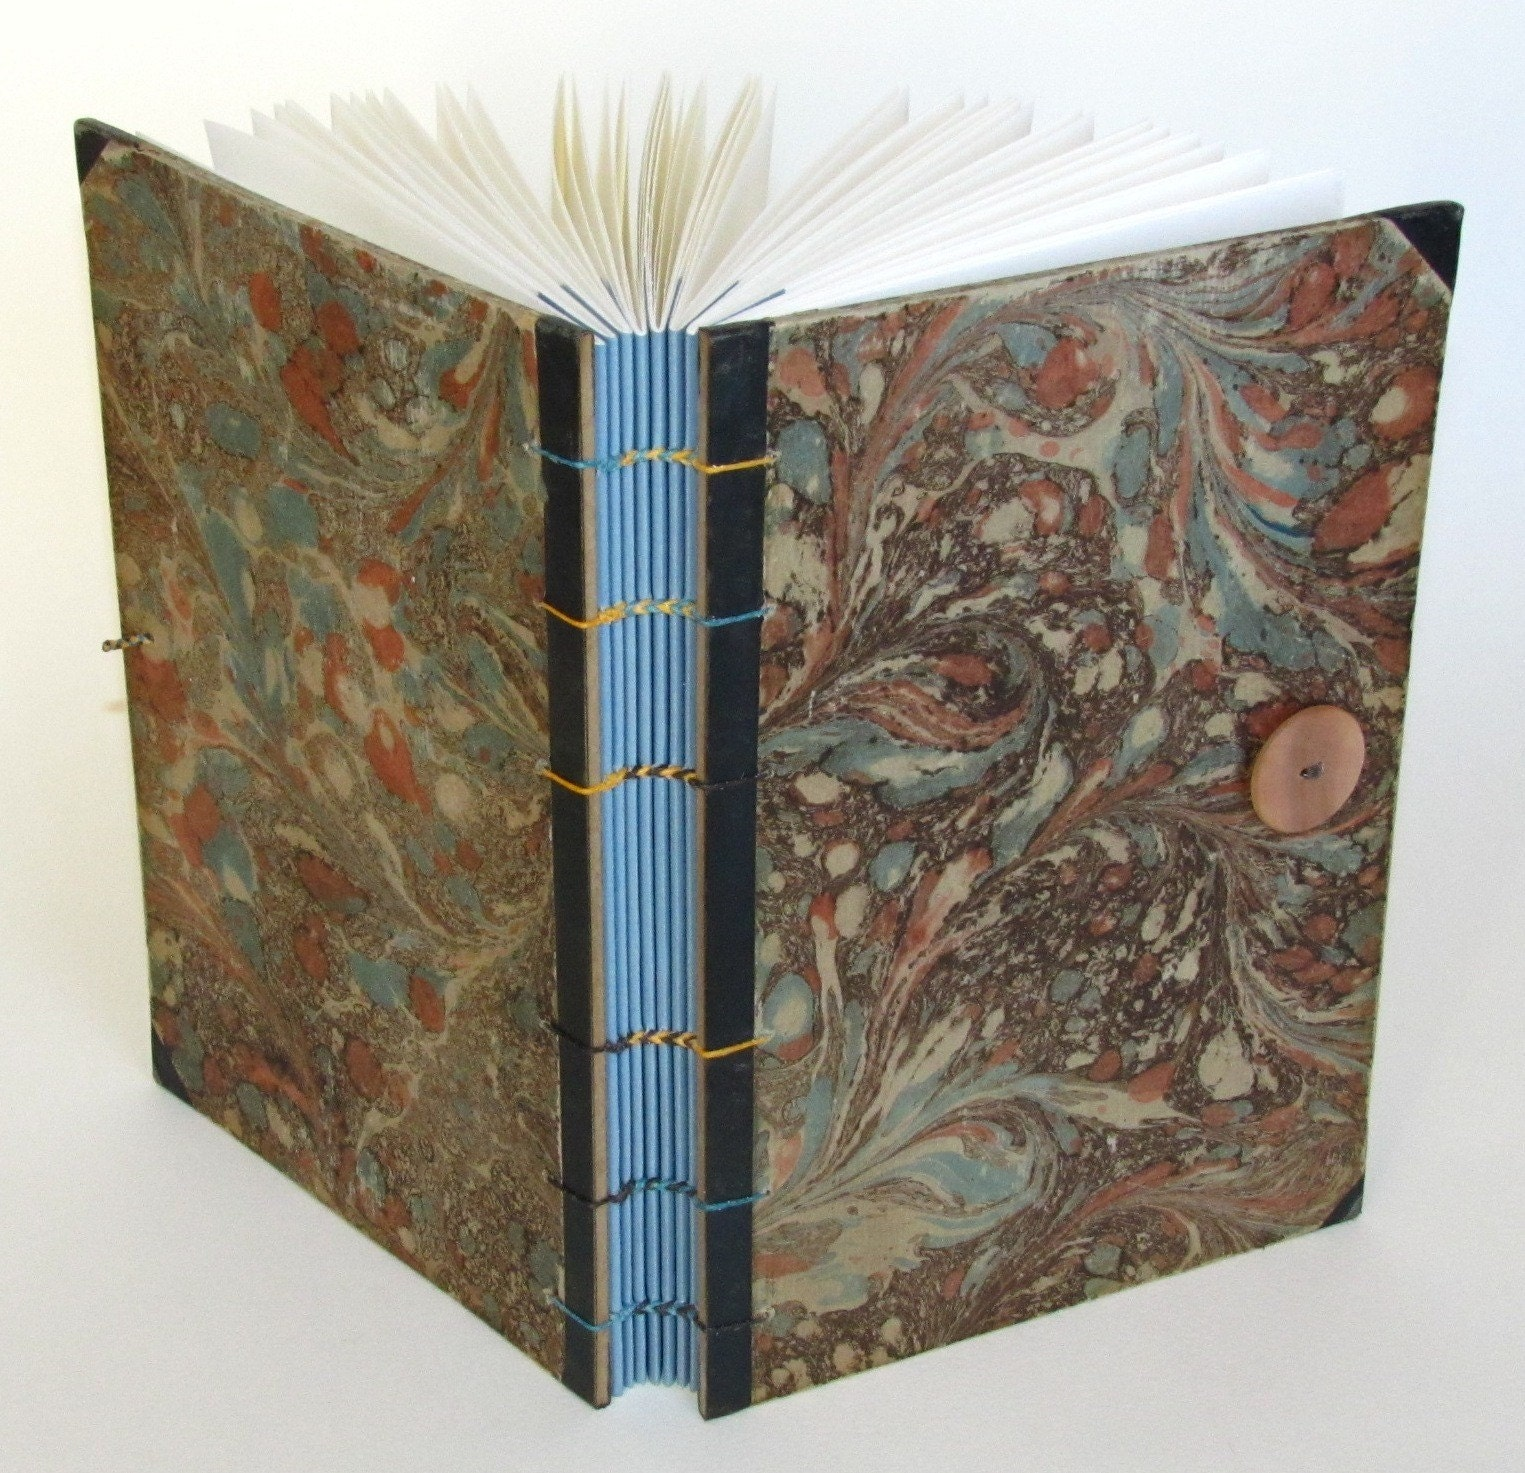 Large Blank Journal Made with Antique Book Cover